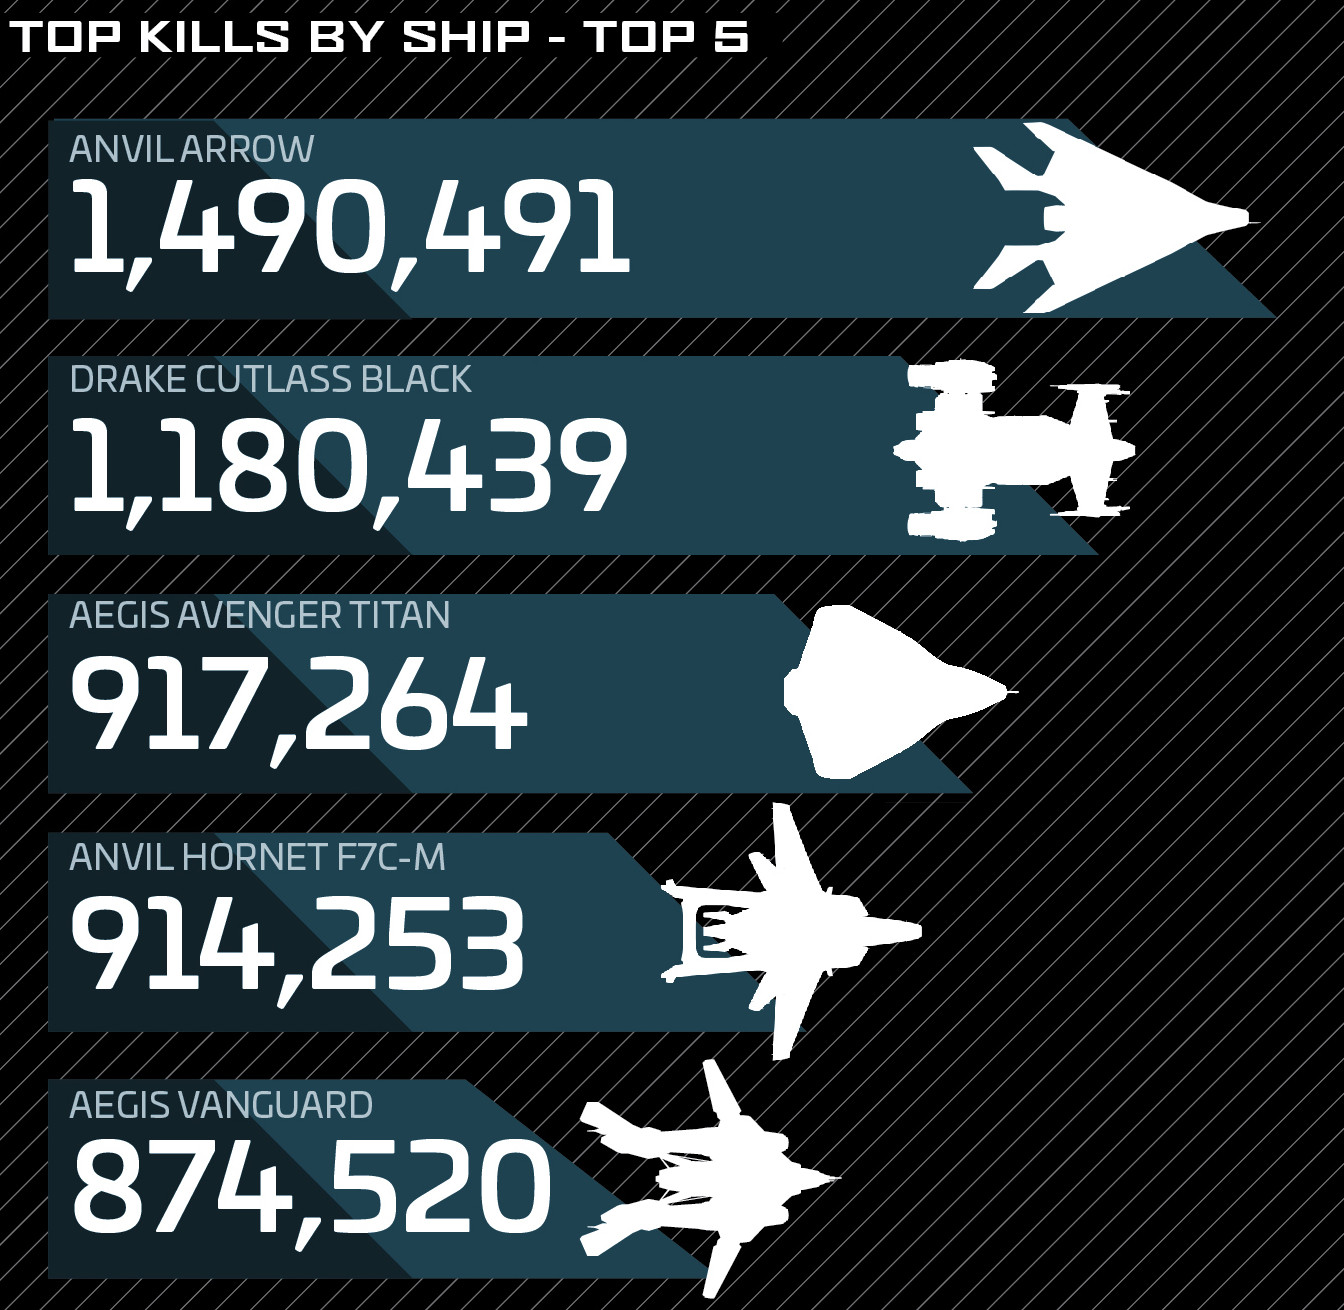 List Of Best Ships In Star Citizen By Category